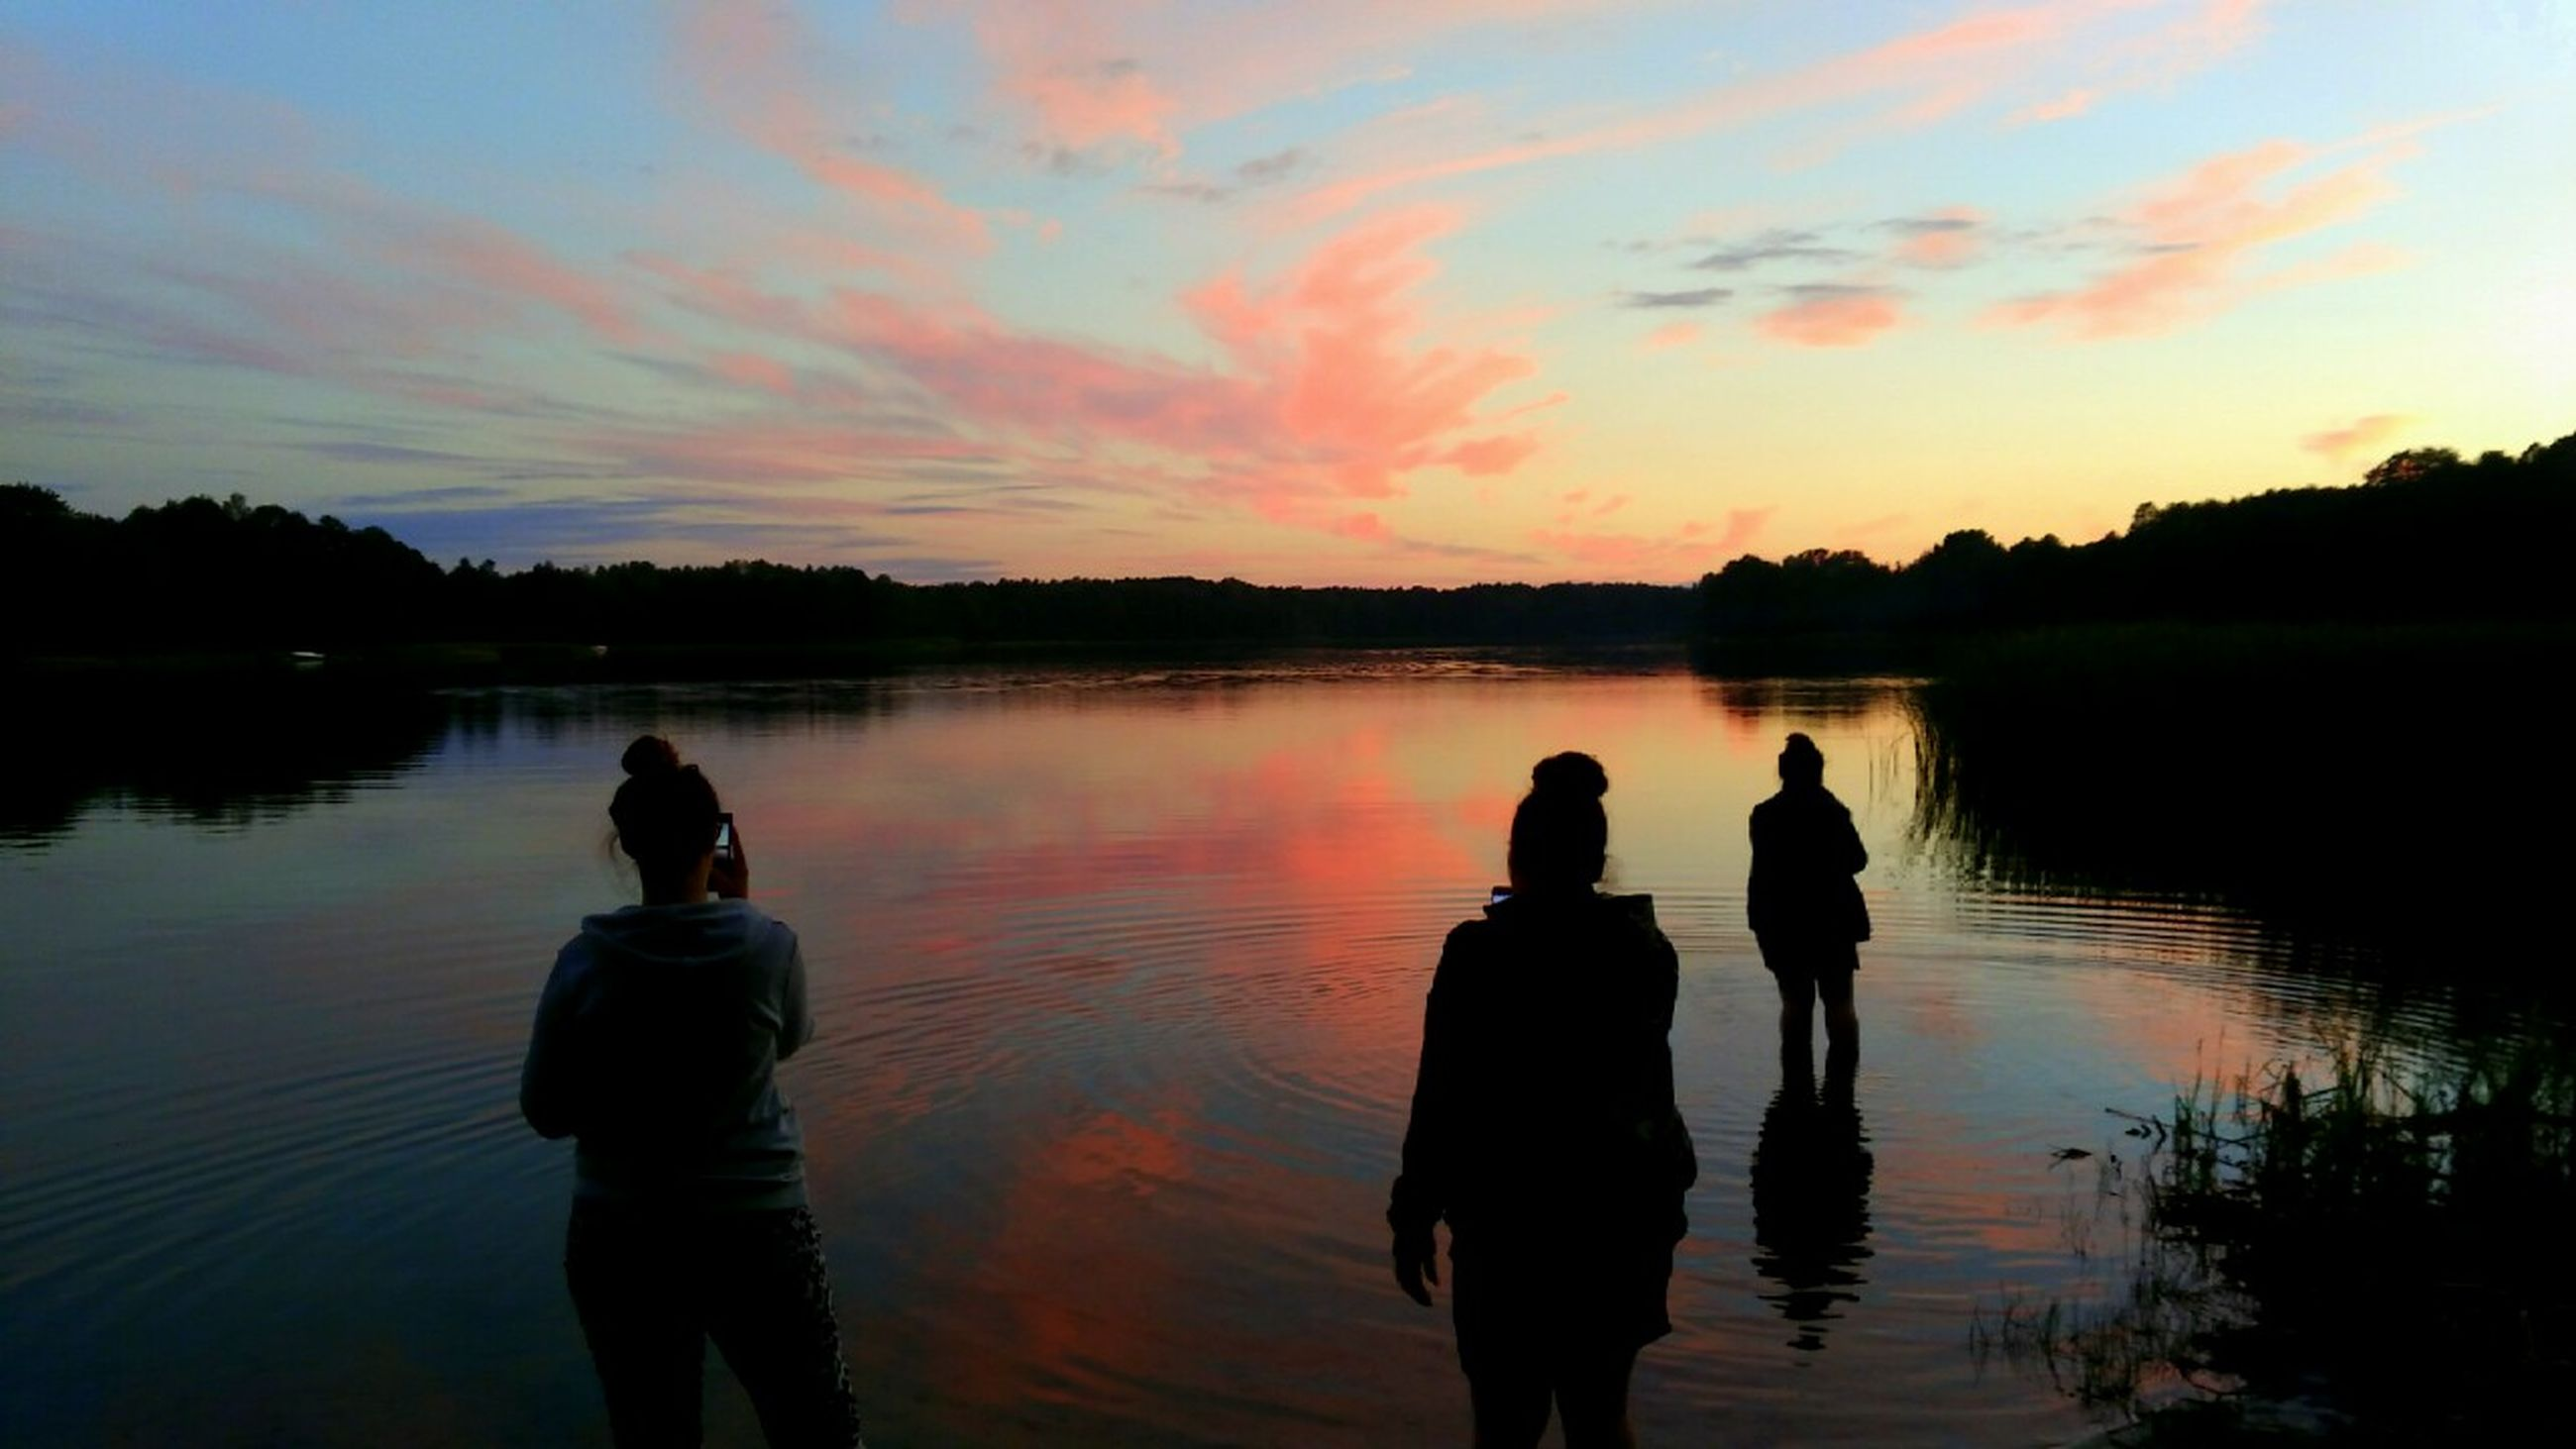 water, reflection, silhouette, sunset, sky, beauty in nature, outdoors, nature, real people, men, tranquility, lake, scenics, togetherness, tranquil scene, bonding, people, adult, day